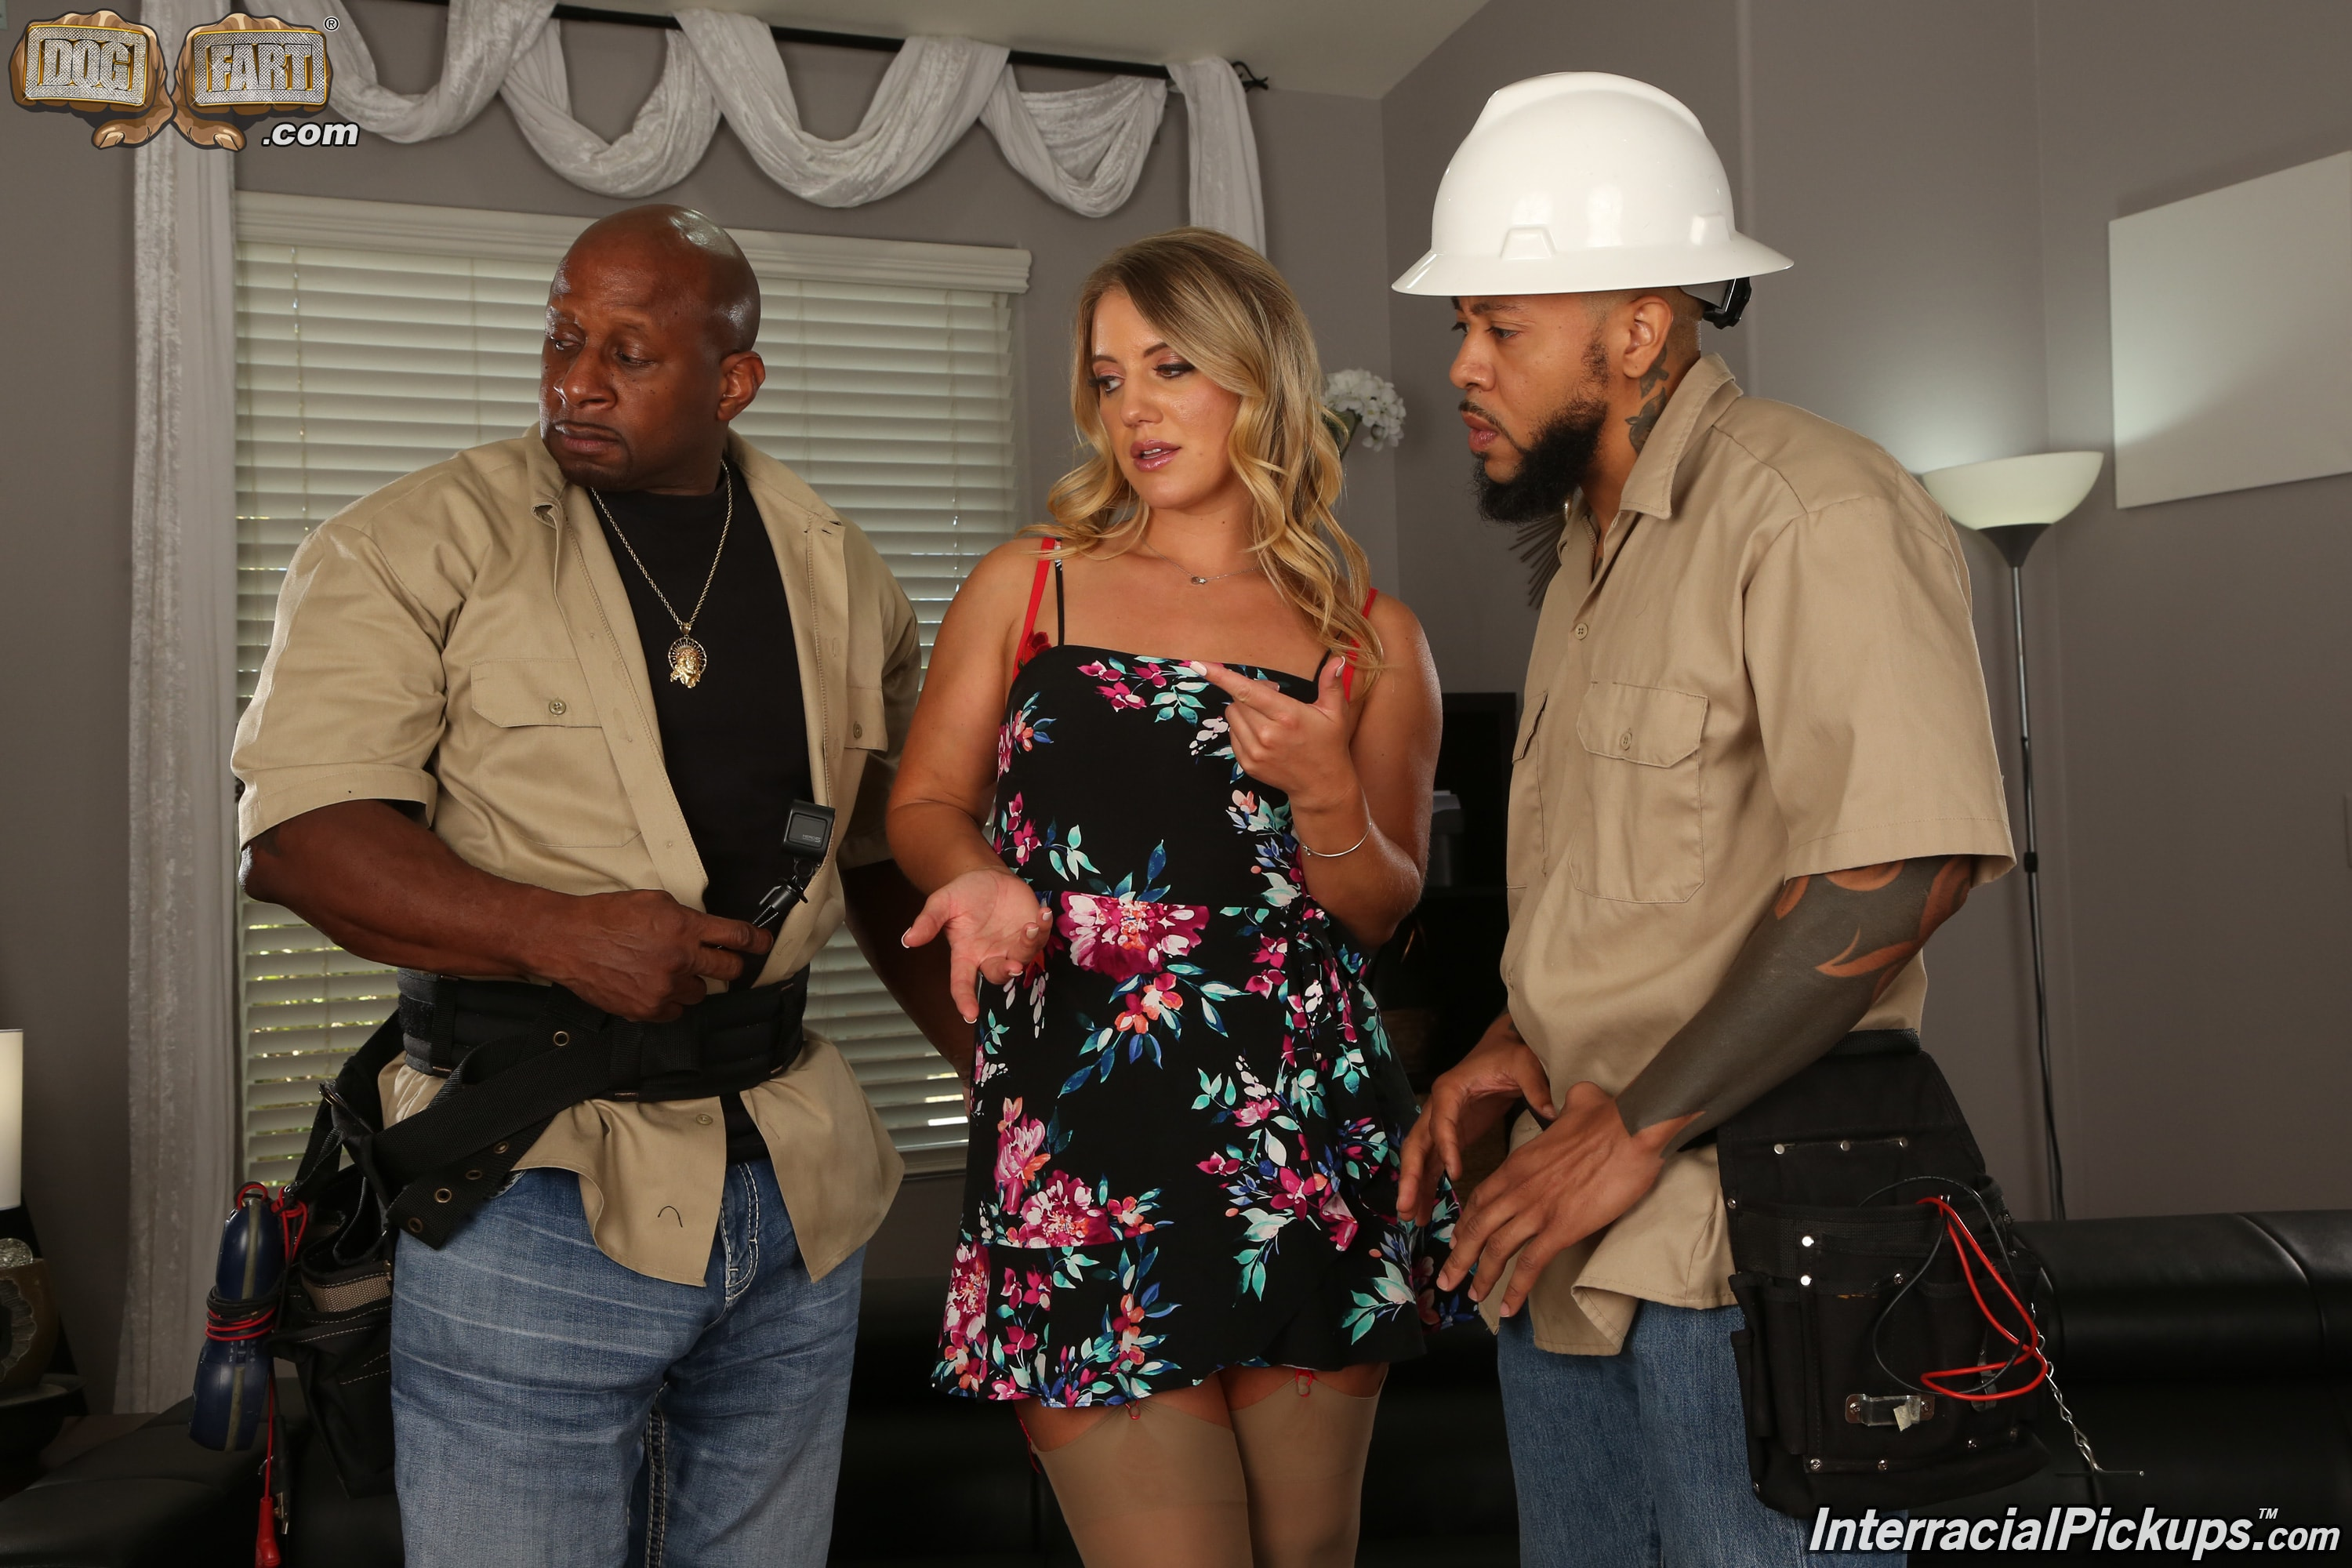 Dogfart '- Interracial Pickups - Scene 2' starring Candice Dare (Photo 1)